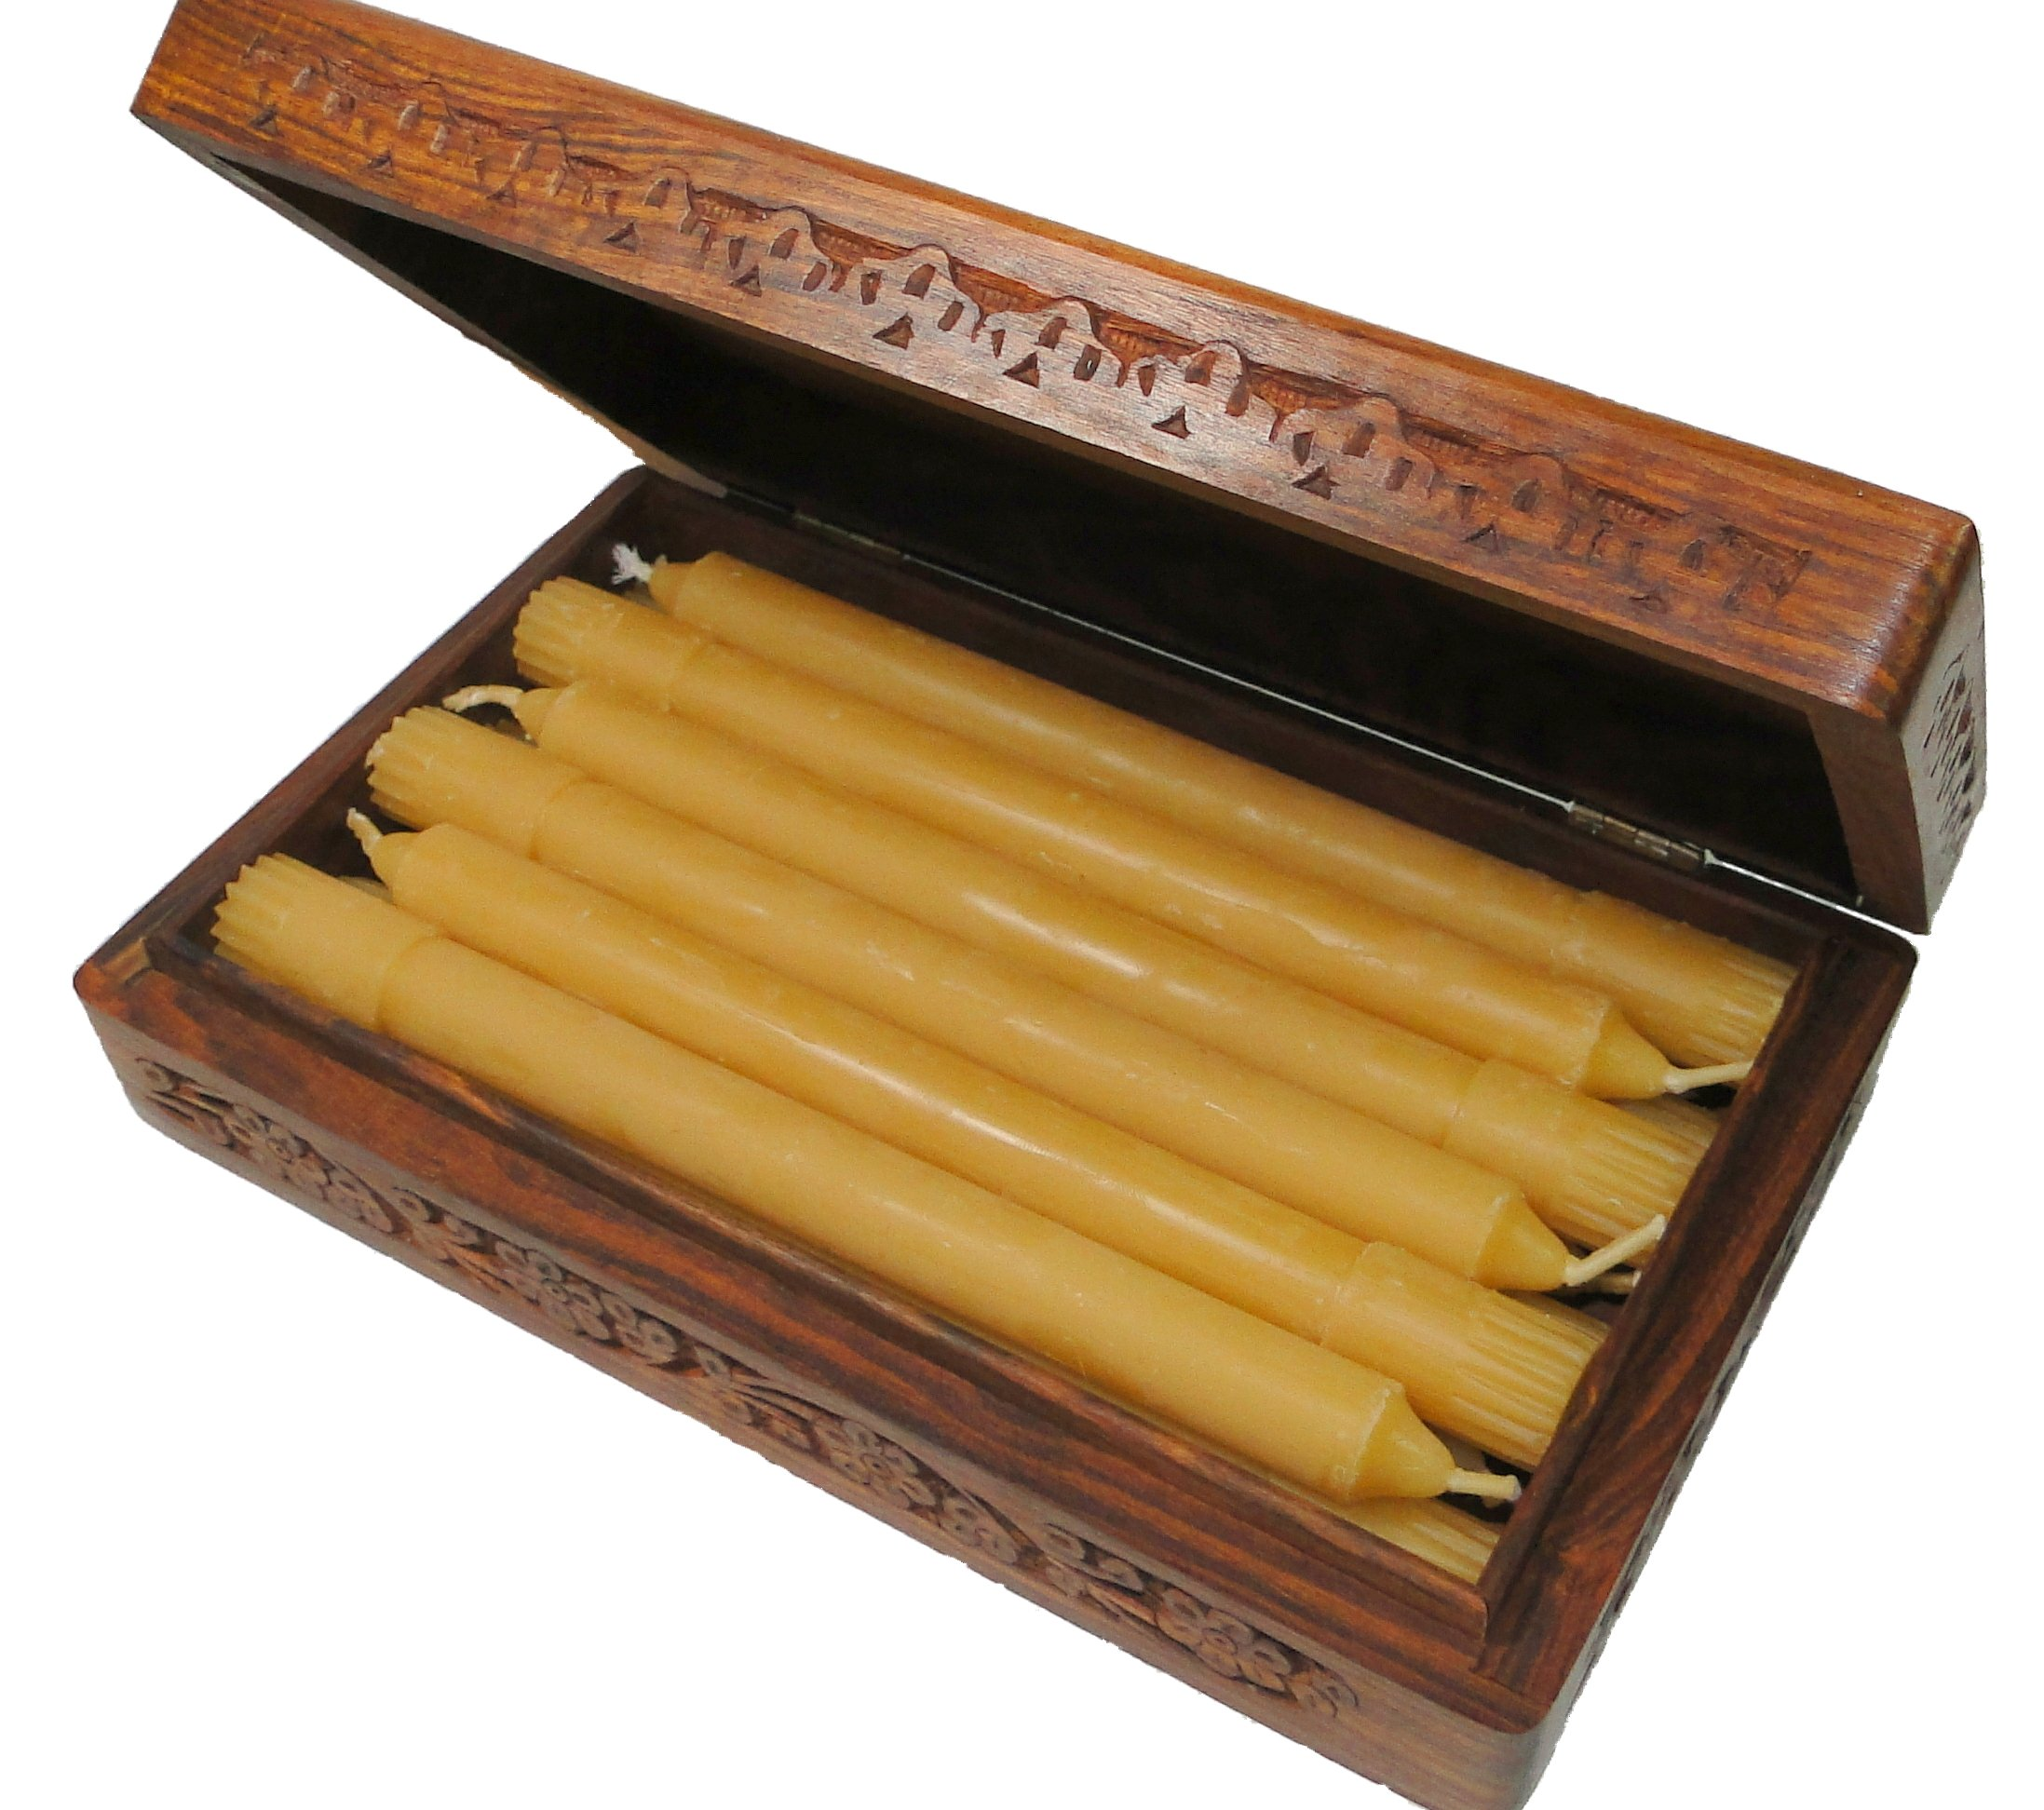 BCandle 100% Beeswax Candles Organic Hand Made - 8 Inch Tall, 3/4 Inch Diameter, Wood Box, Tapers (Pack of 12)